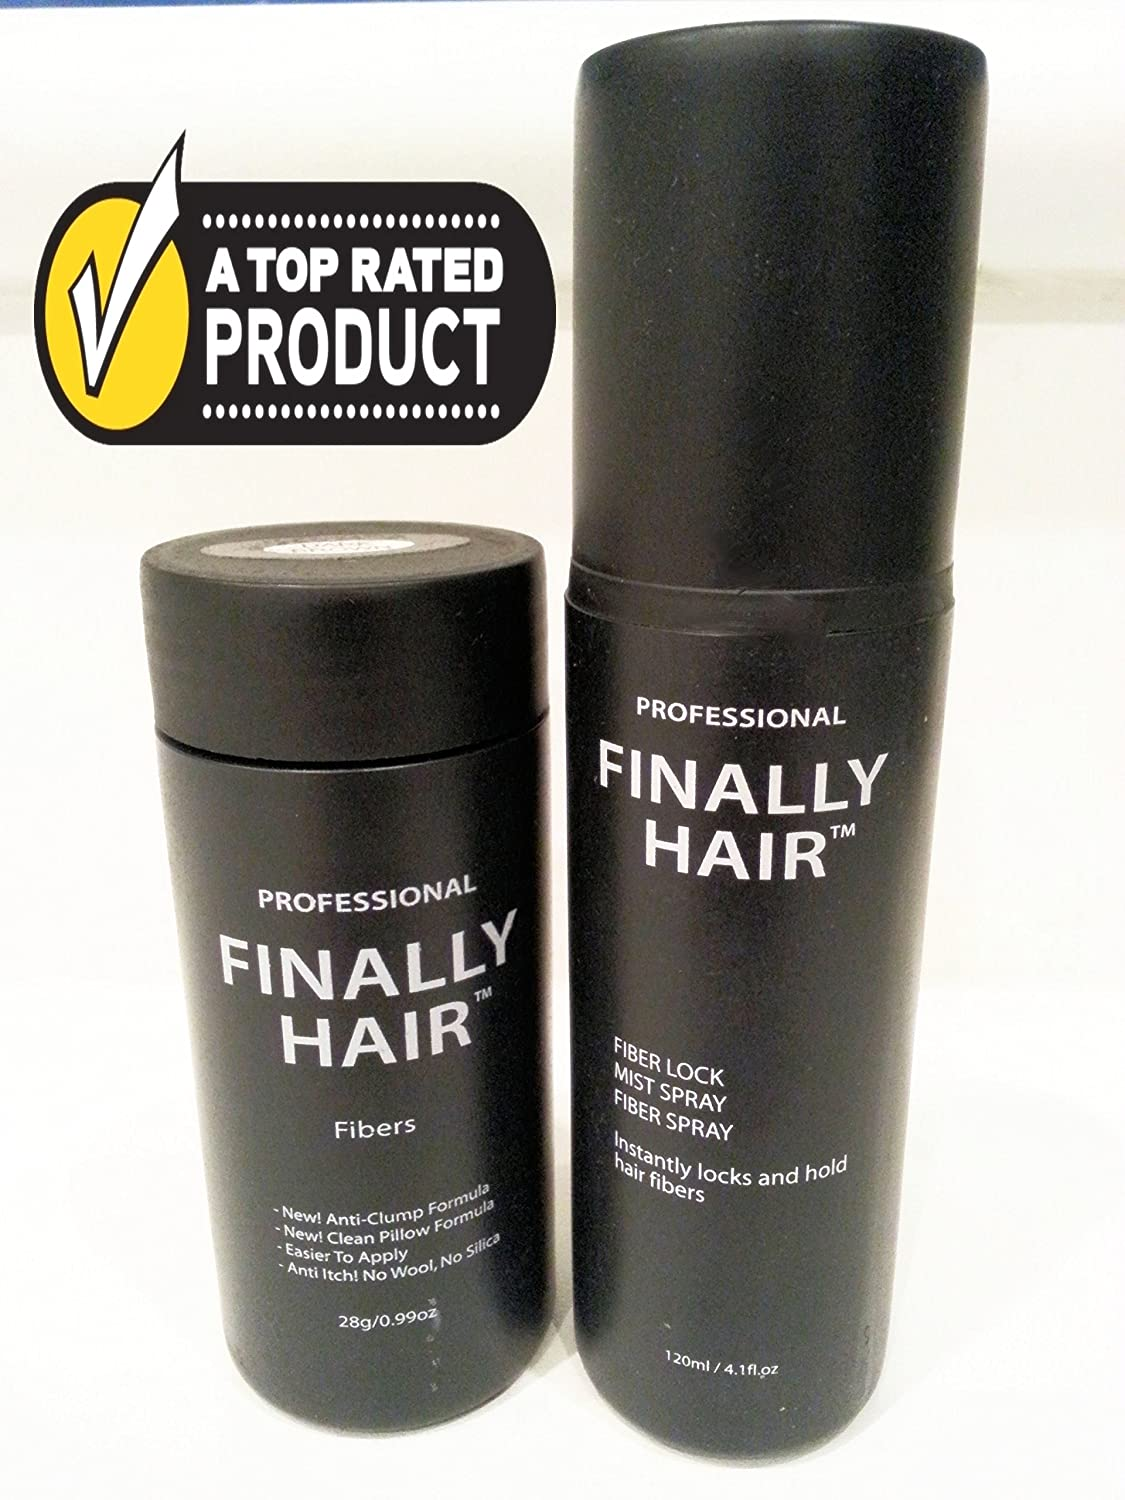 Hair Building Fibers Hair Loss Concealer By Finally Hair - Soft Black 28g Bottle of Fibers and Finally Hair 120ml 4.1 Oz. Bottle of Fiber Lock Hair Spray. Get Thick Hair Instantly (Soft Black) Finally Hair Corporation